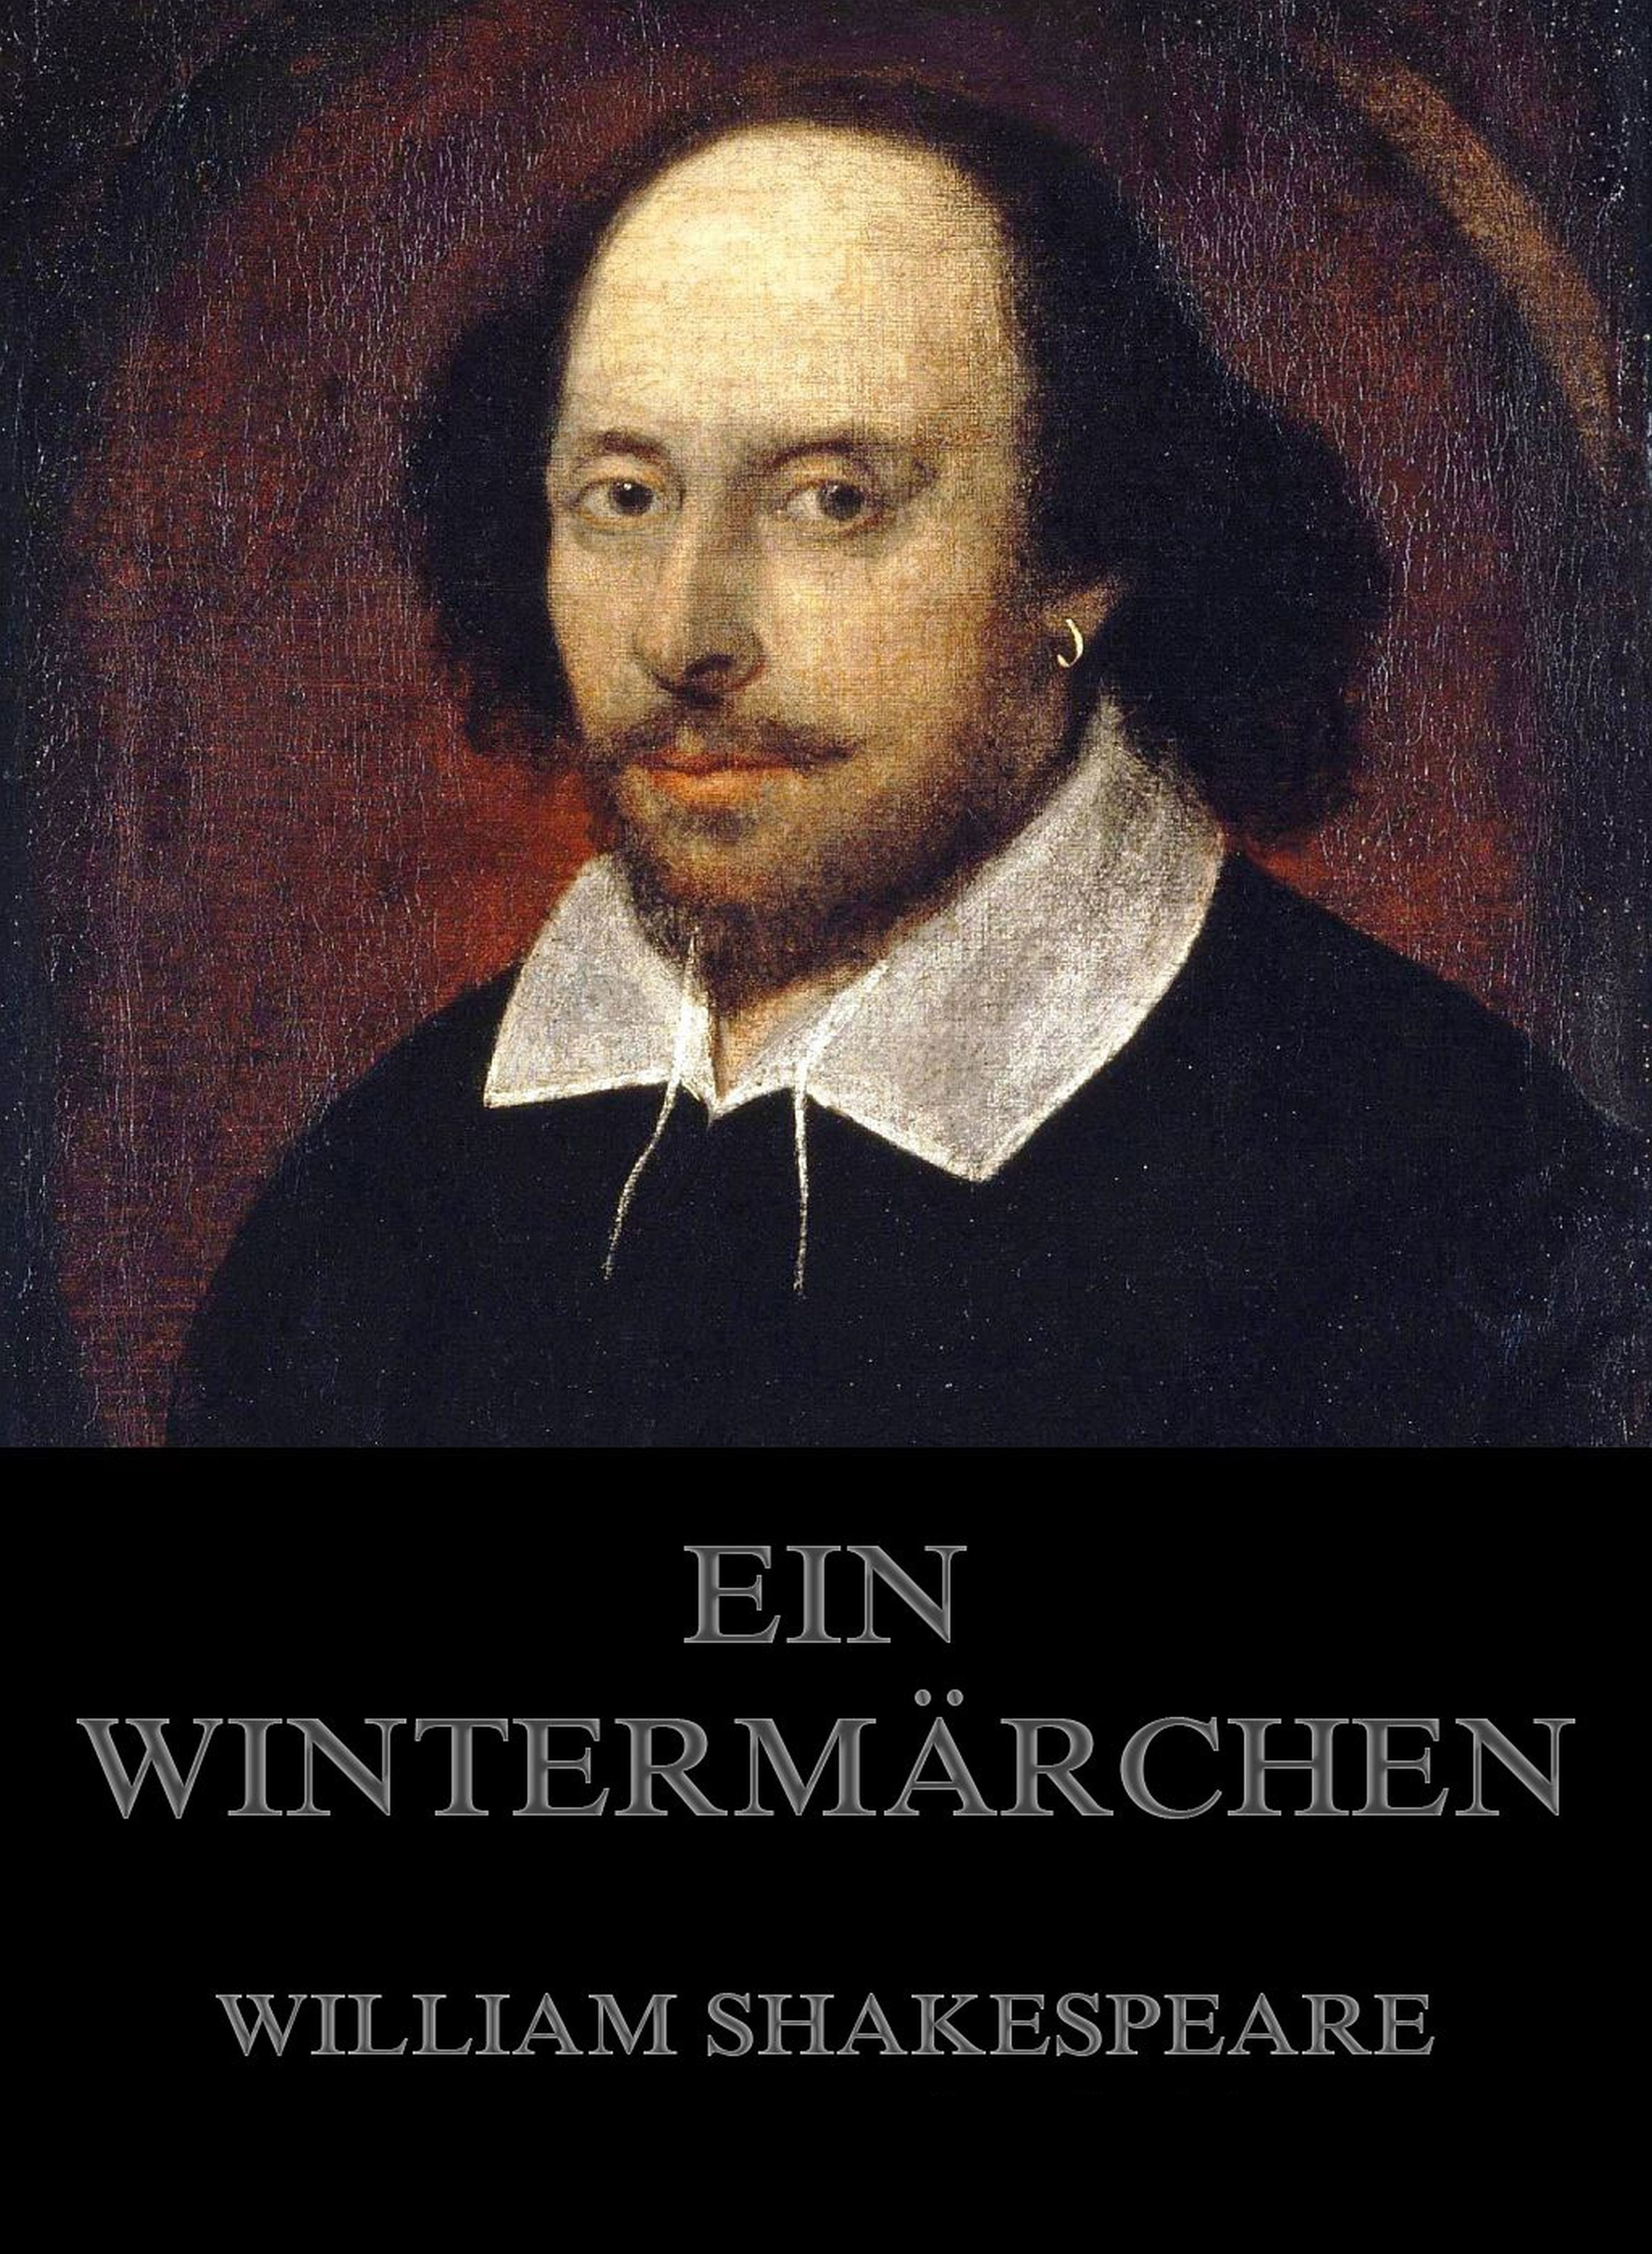 William Shakespeare Ein Wintermärchen генрих гейне deutschland ein wintermärchen